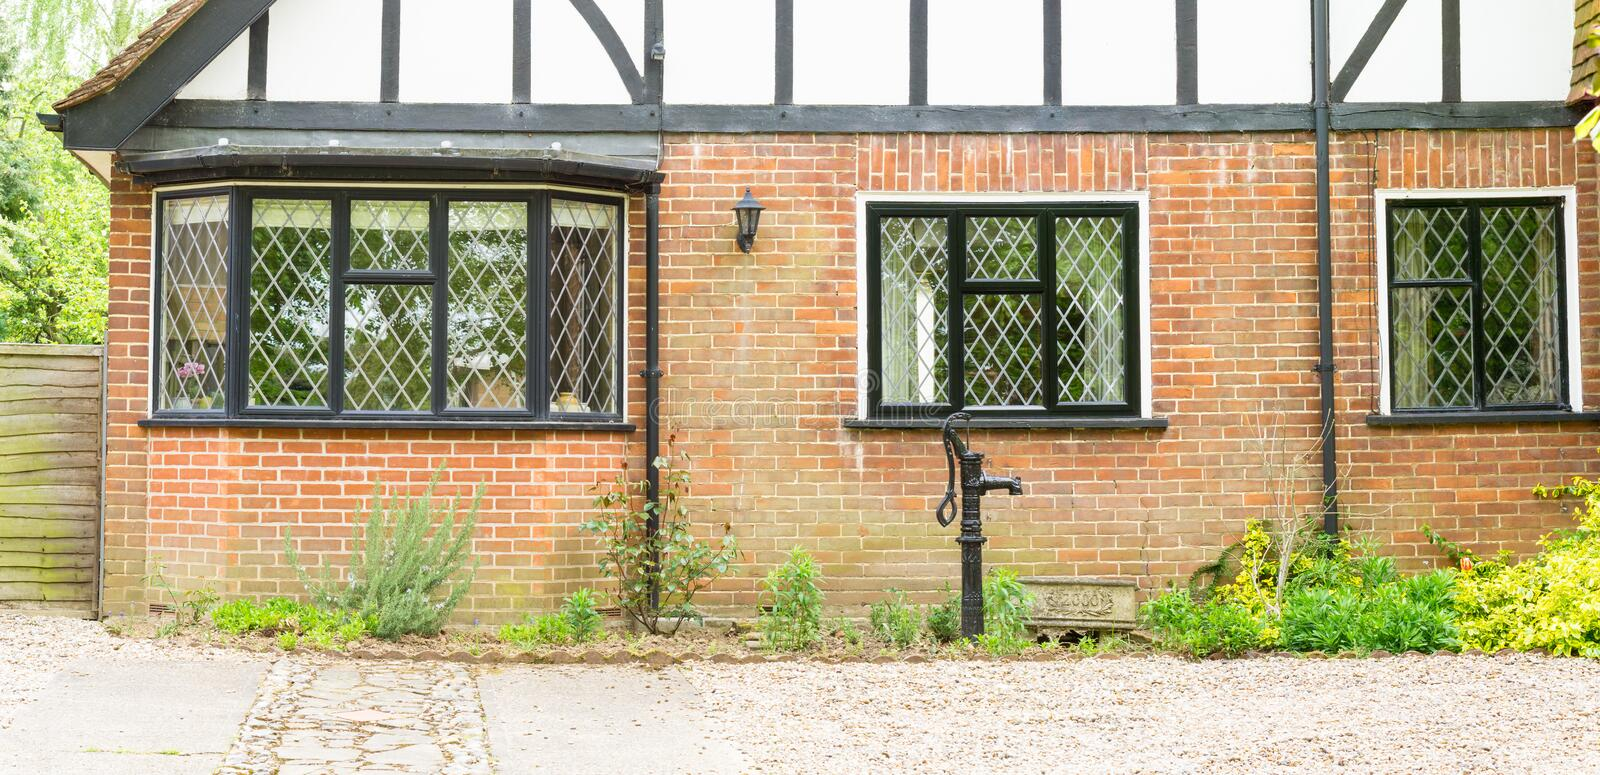 Timber Cottage bay windows. And architecture in rural England stock photography